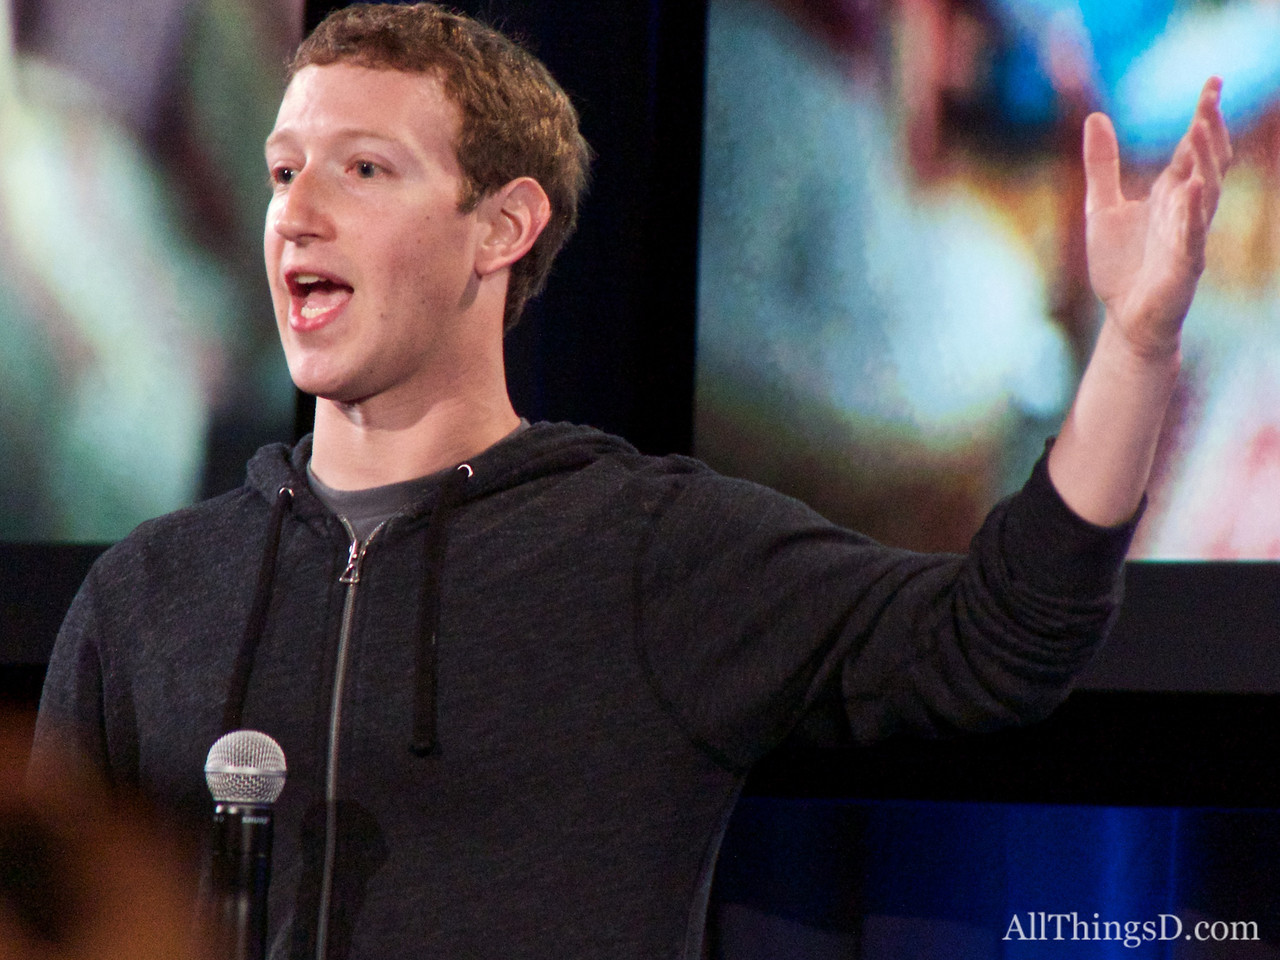 Mark Zuckerberg Has Some Advice for Twitter's IPO: Don't Be Afraid